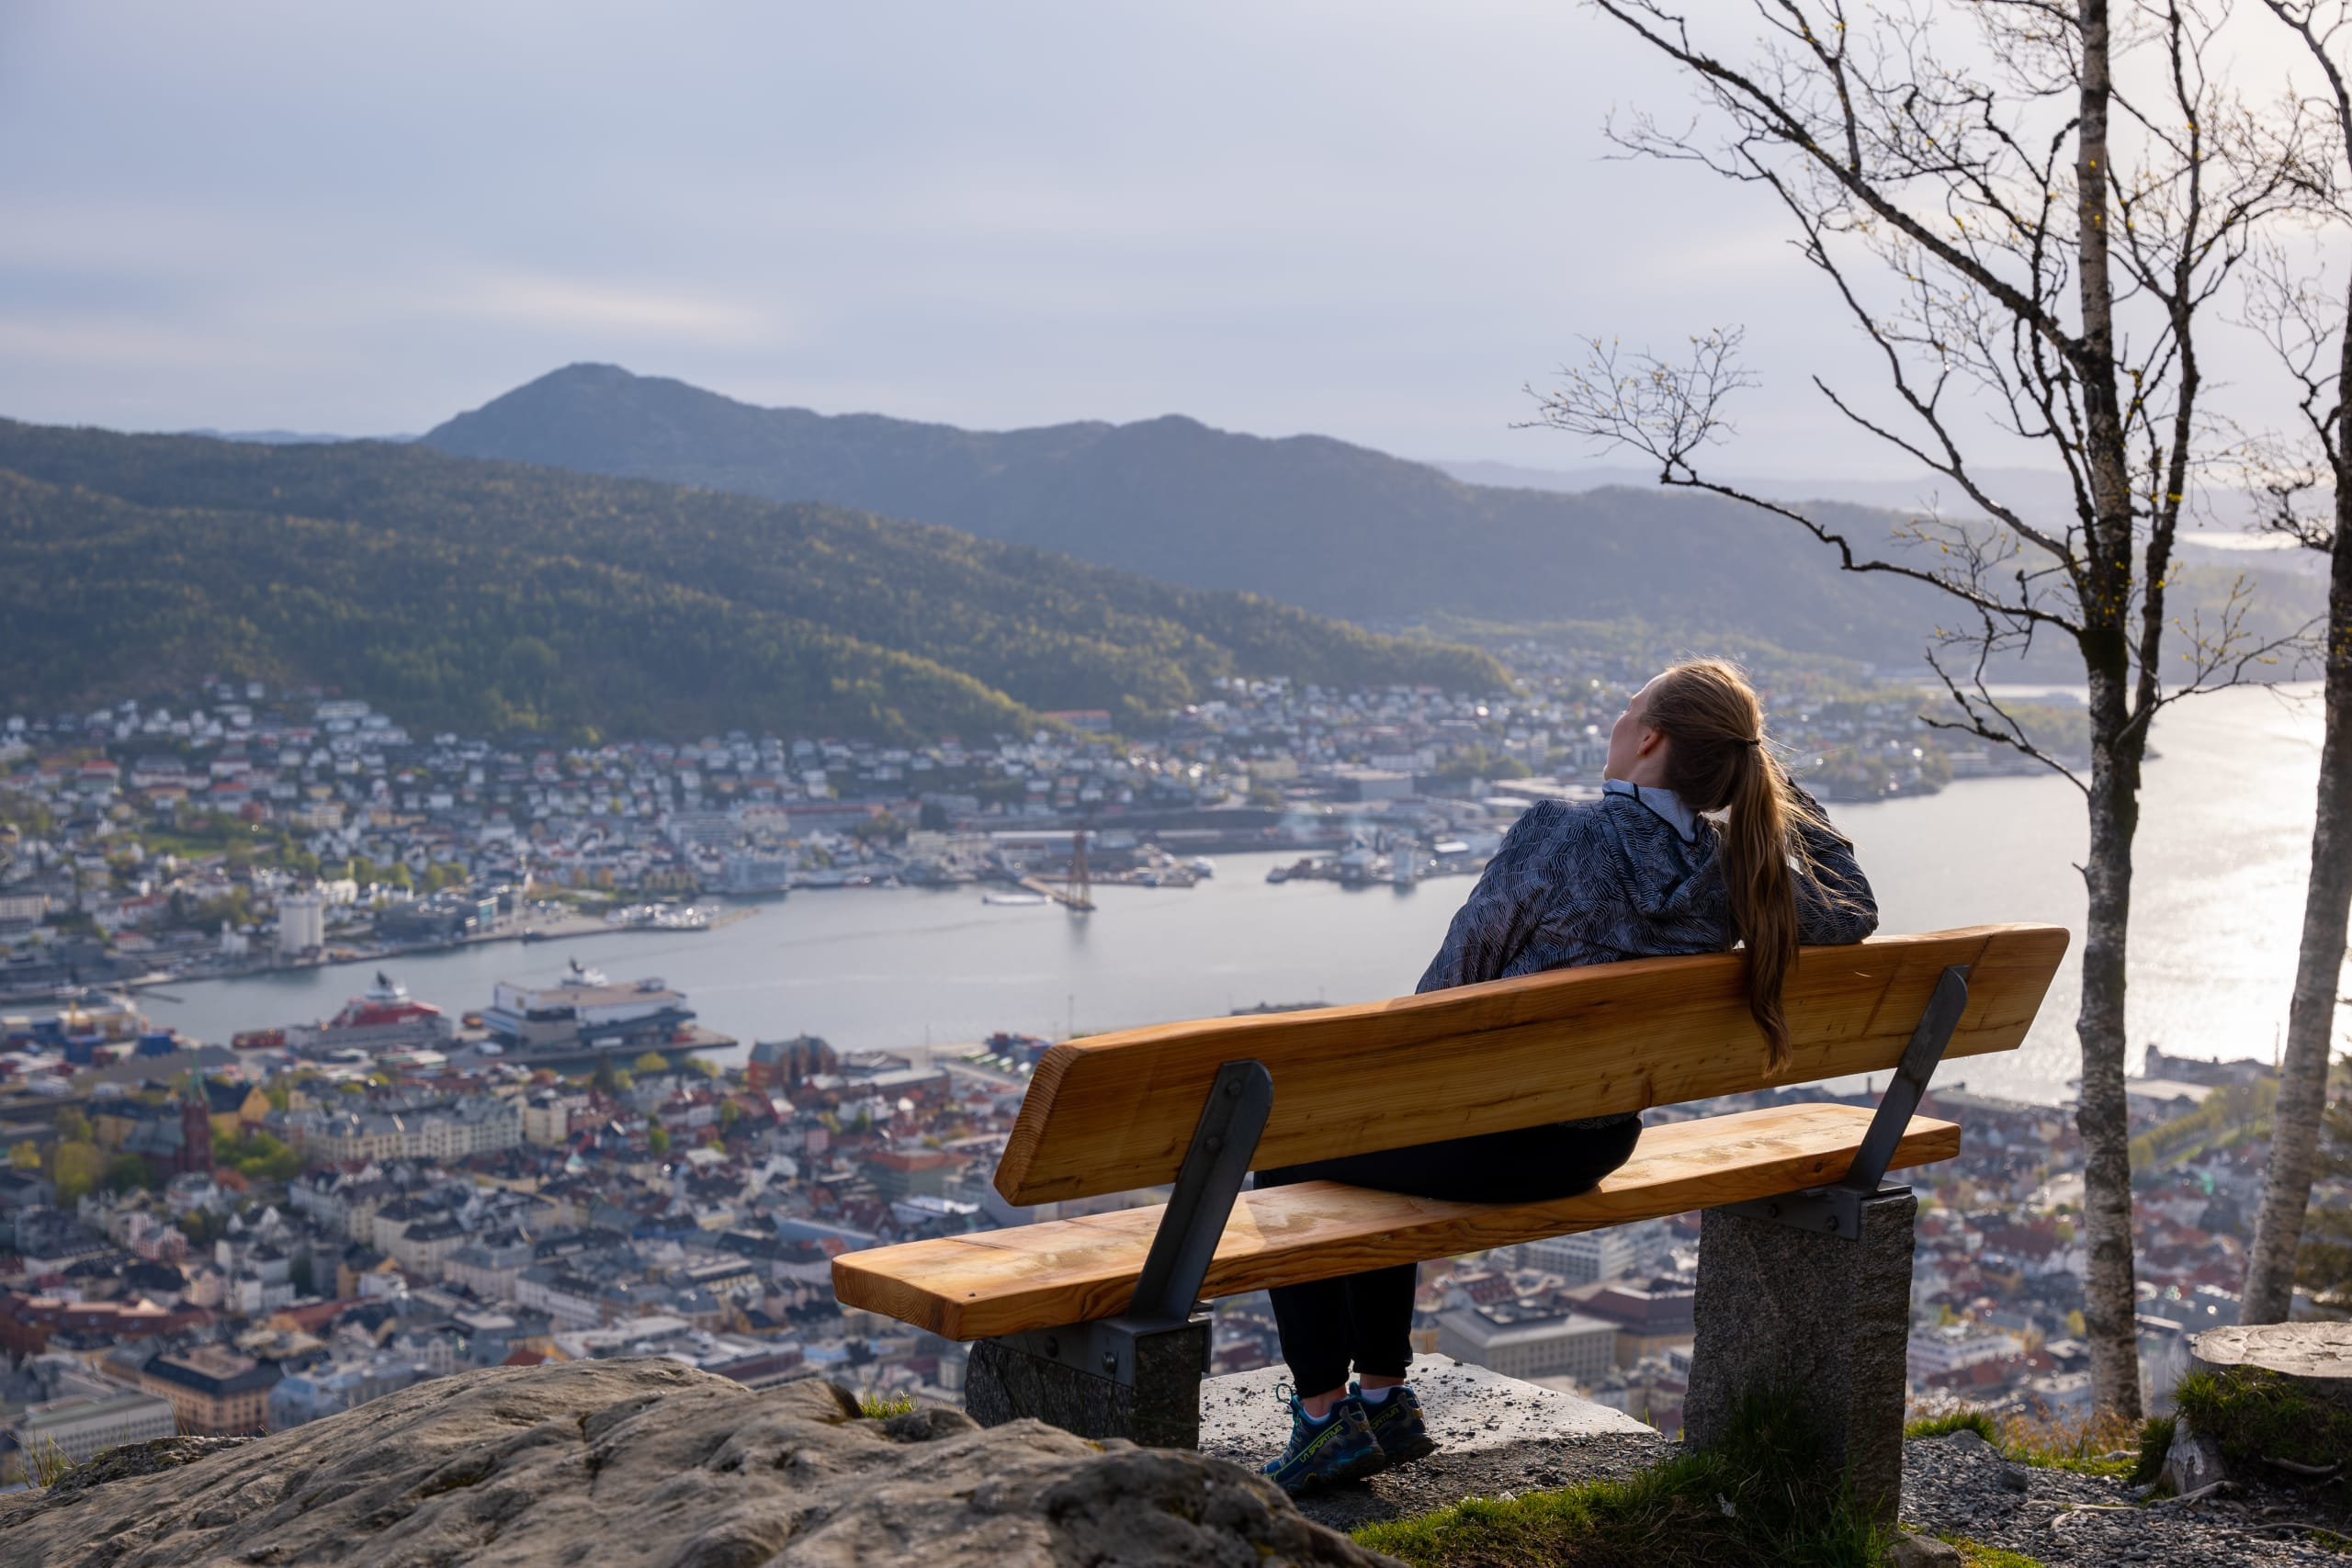 Bench at Mount Fløyen overlooking Bergen city